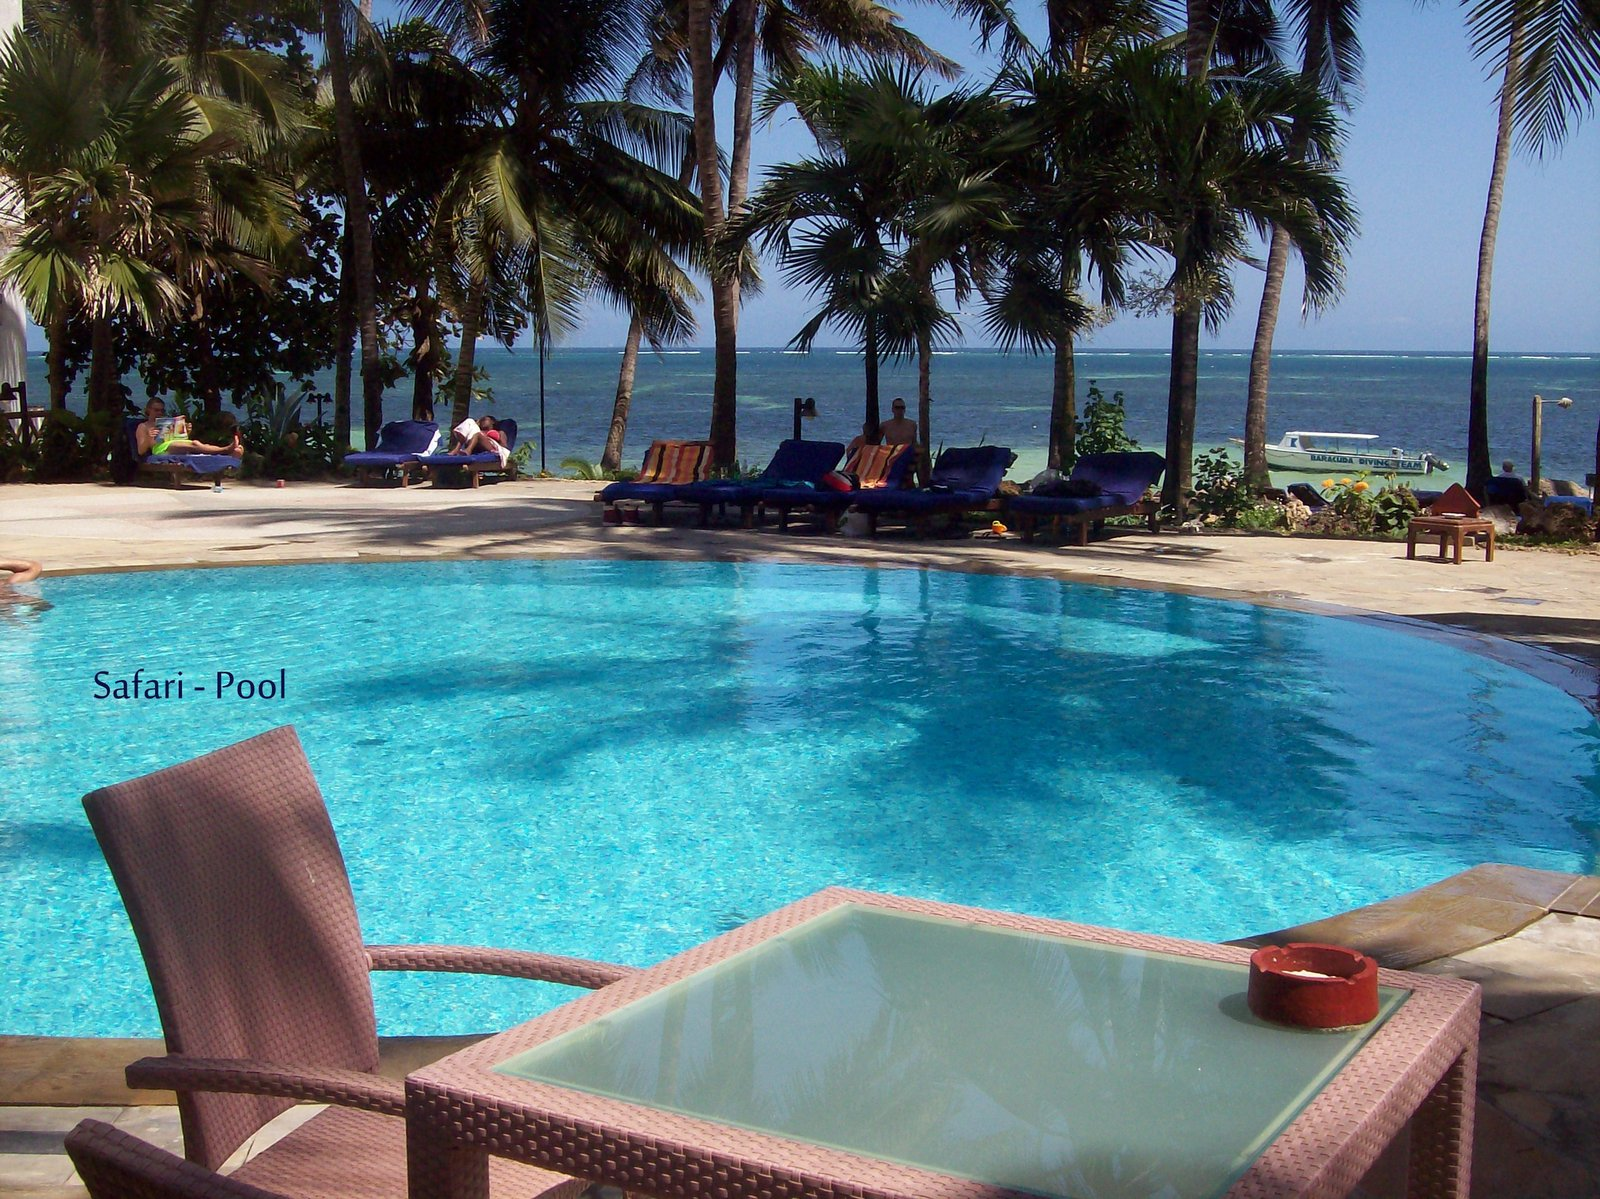 Safari Pool - Severin Sea Lodge Mombasa